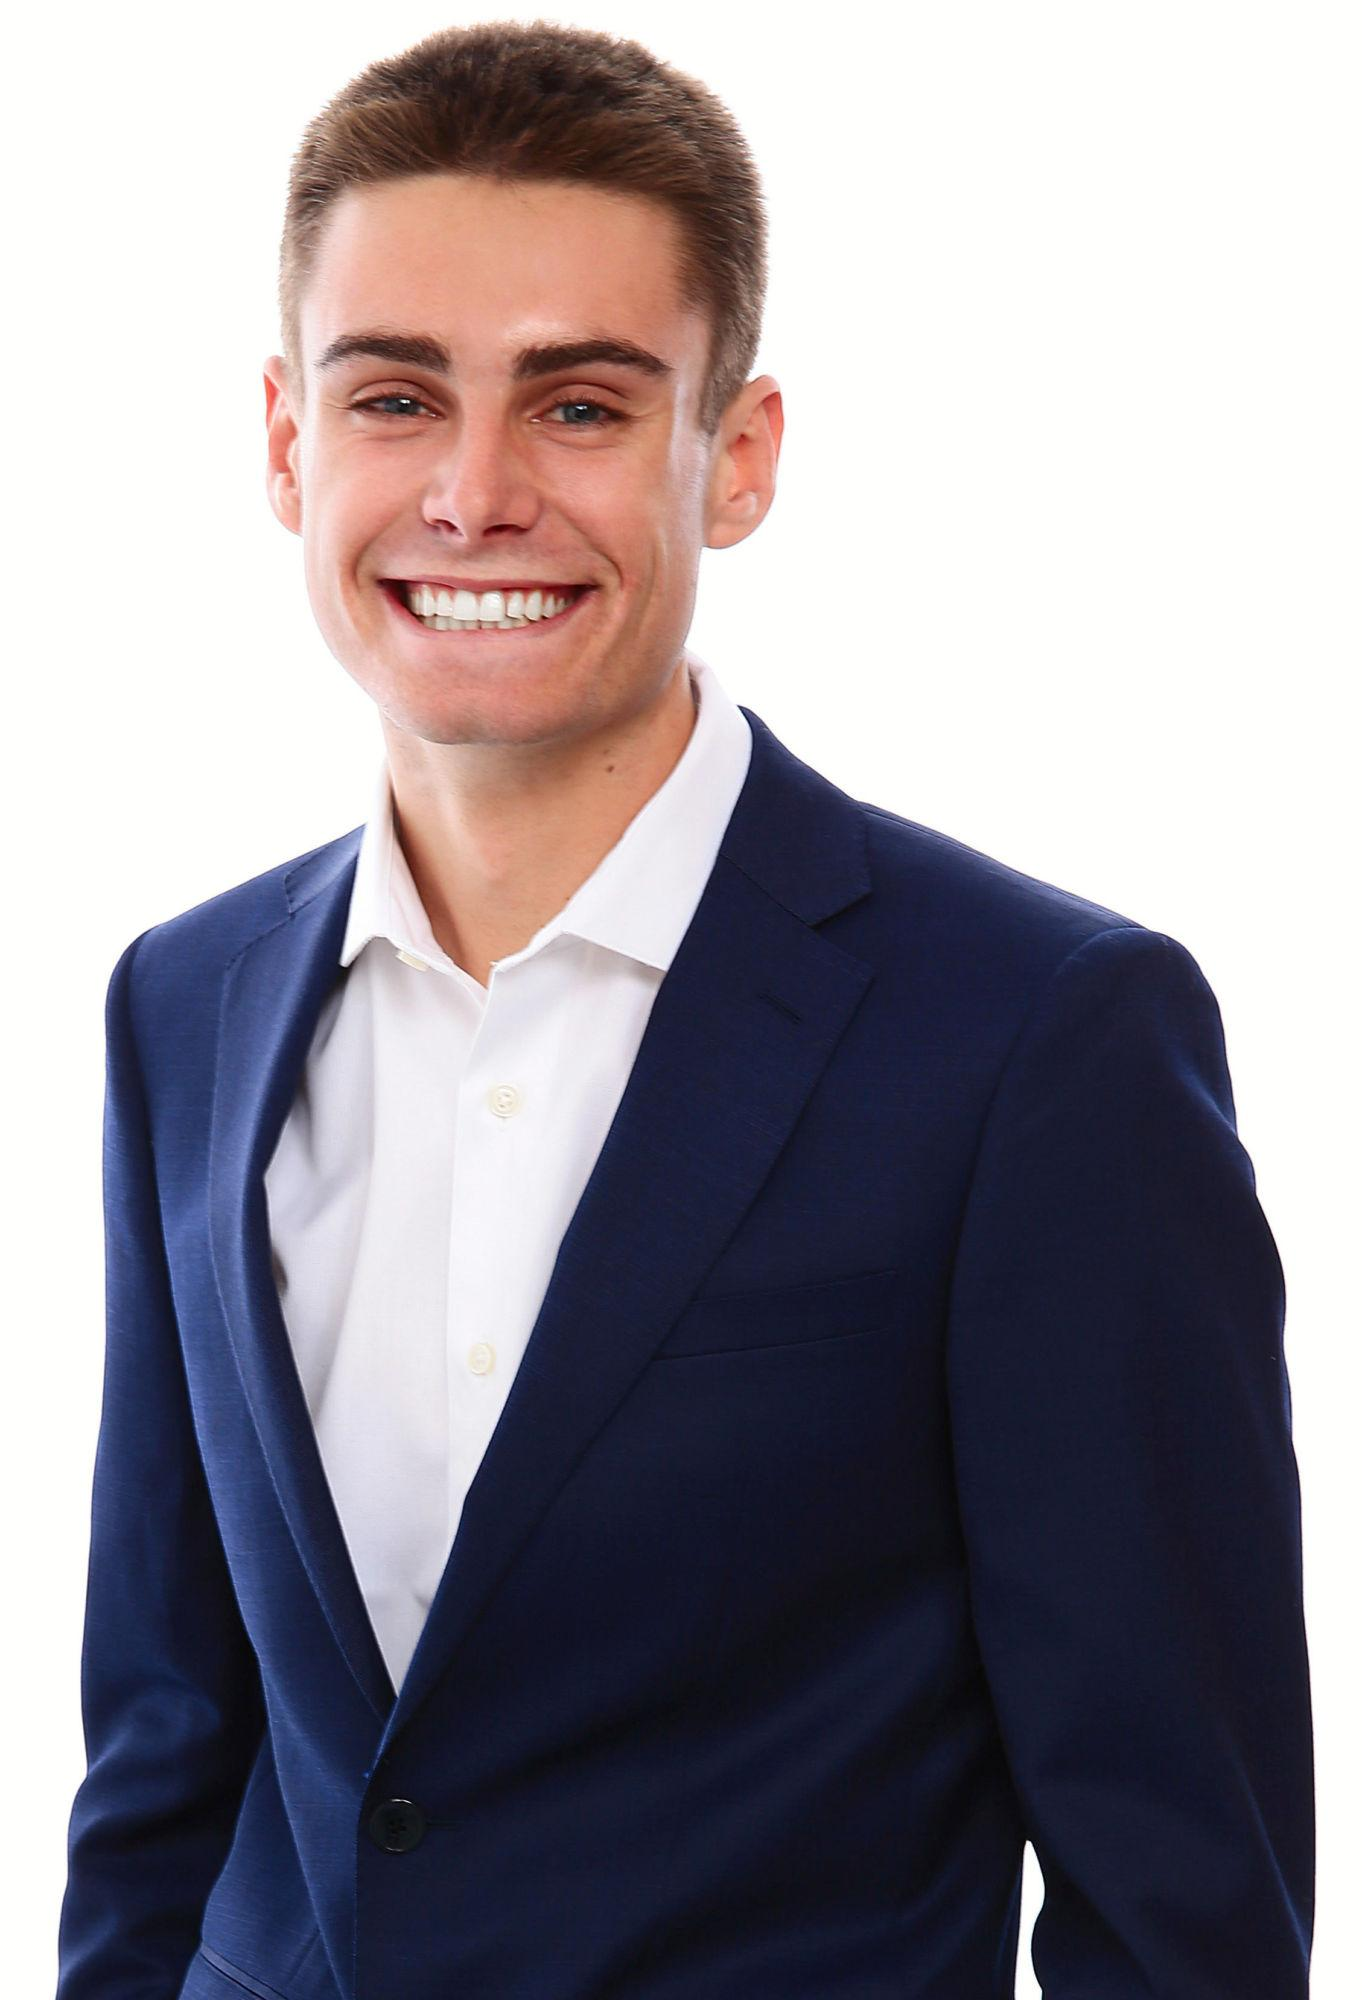 Since graduating from Redwood in 2016, Daly has become one of California's youngest real estate agents. He said in a few years he also hopes to be one of the top agents in the state.